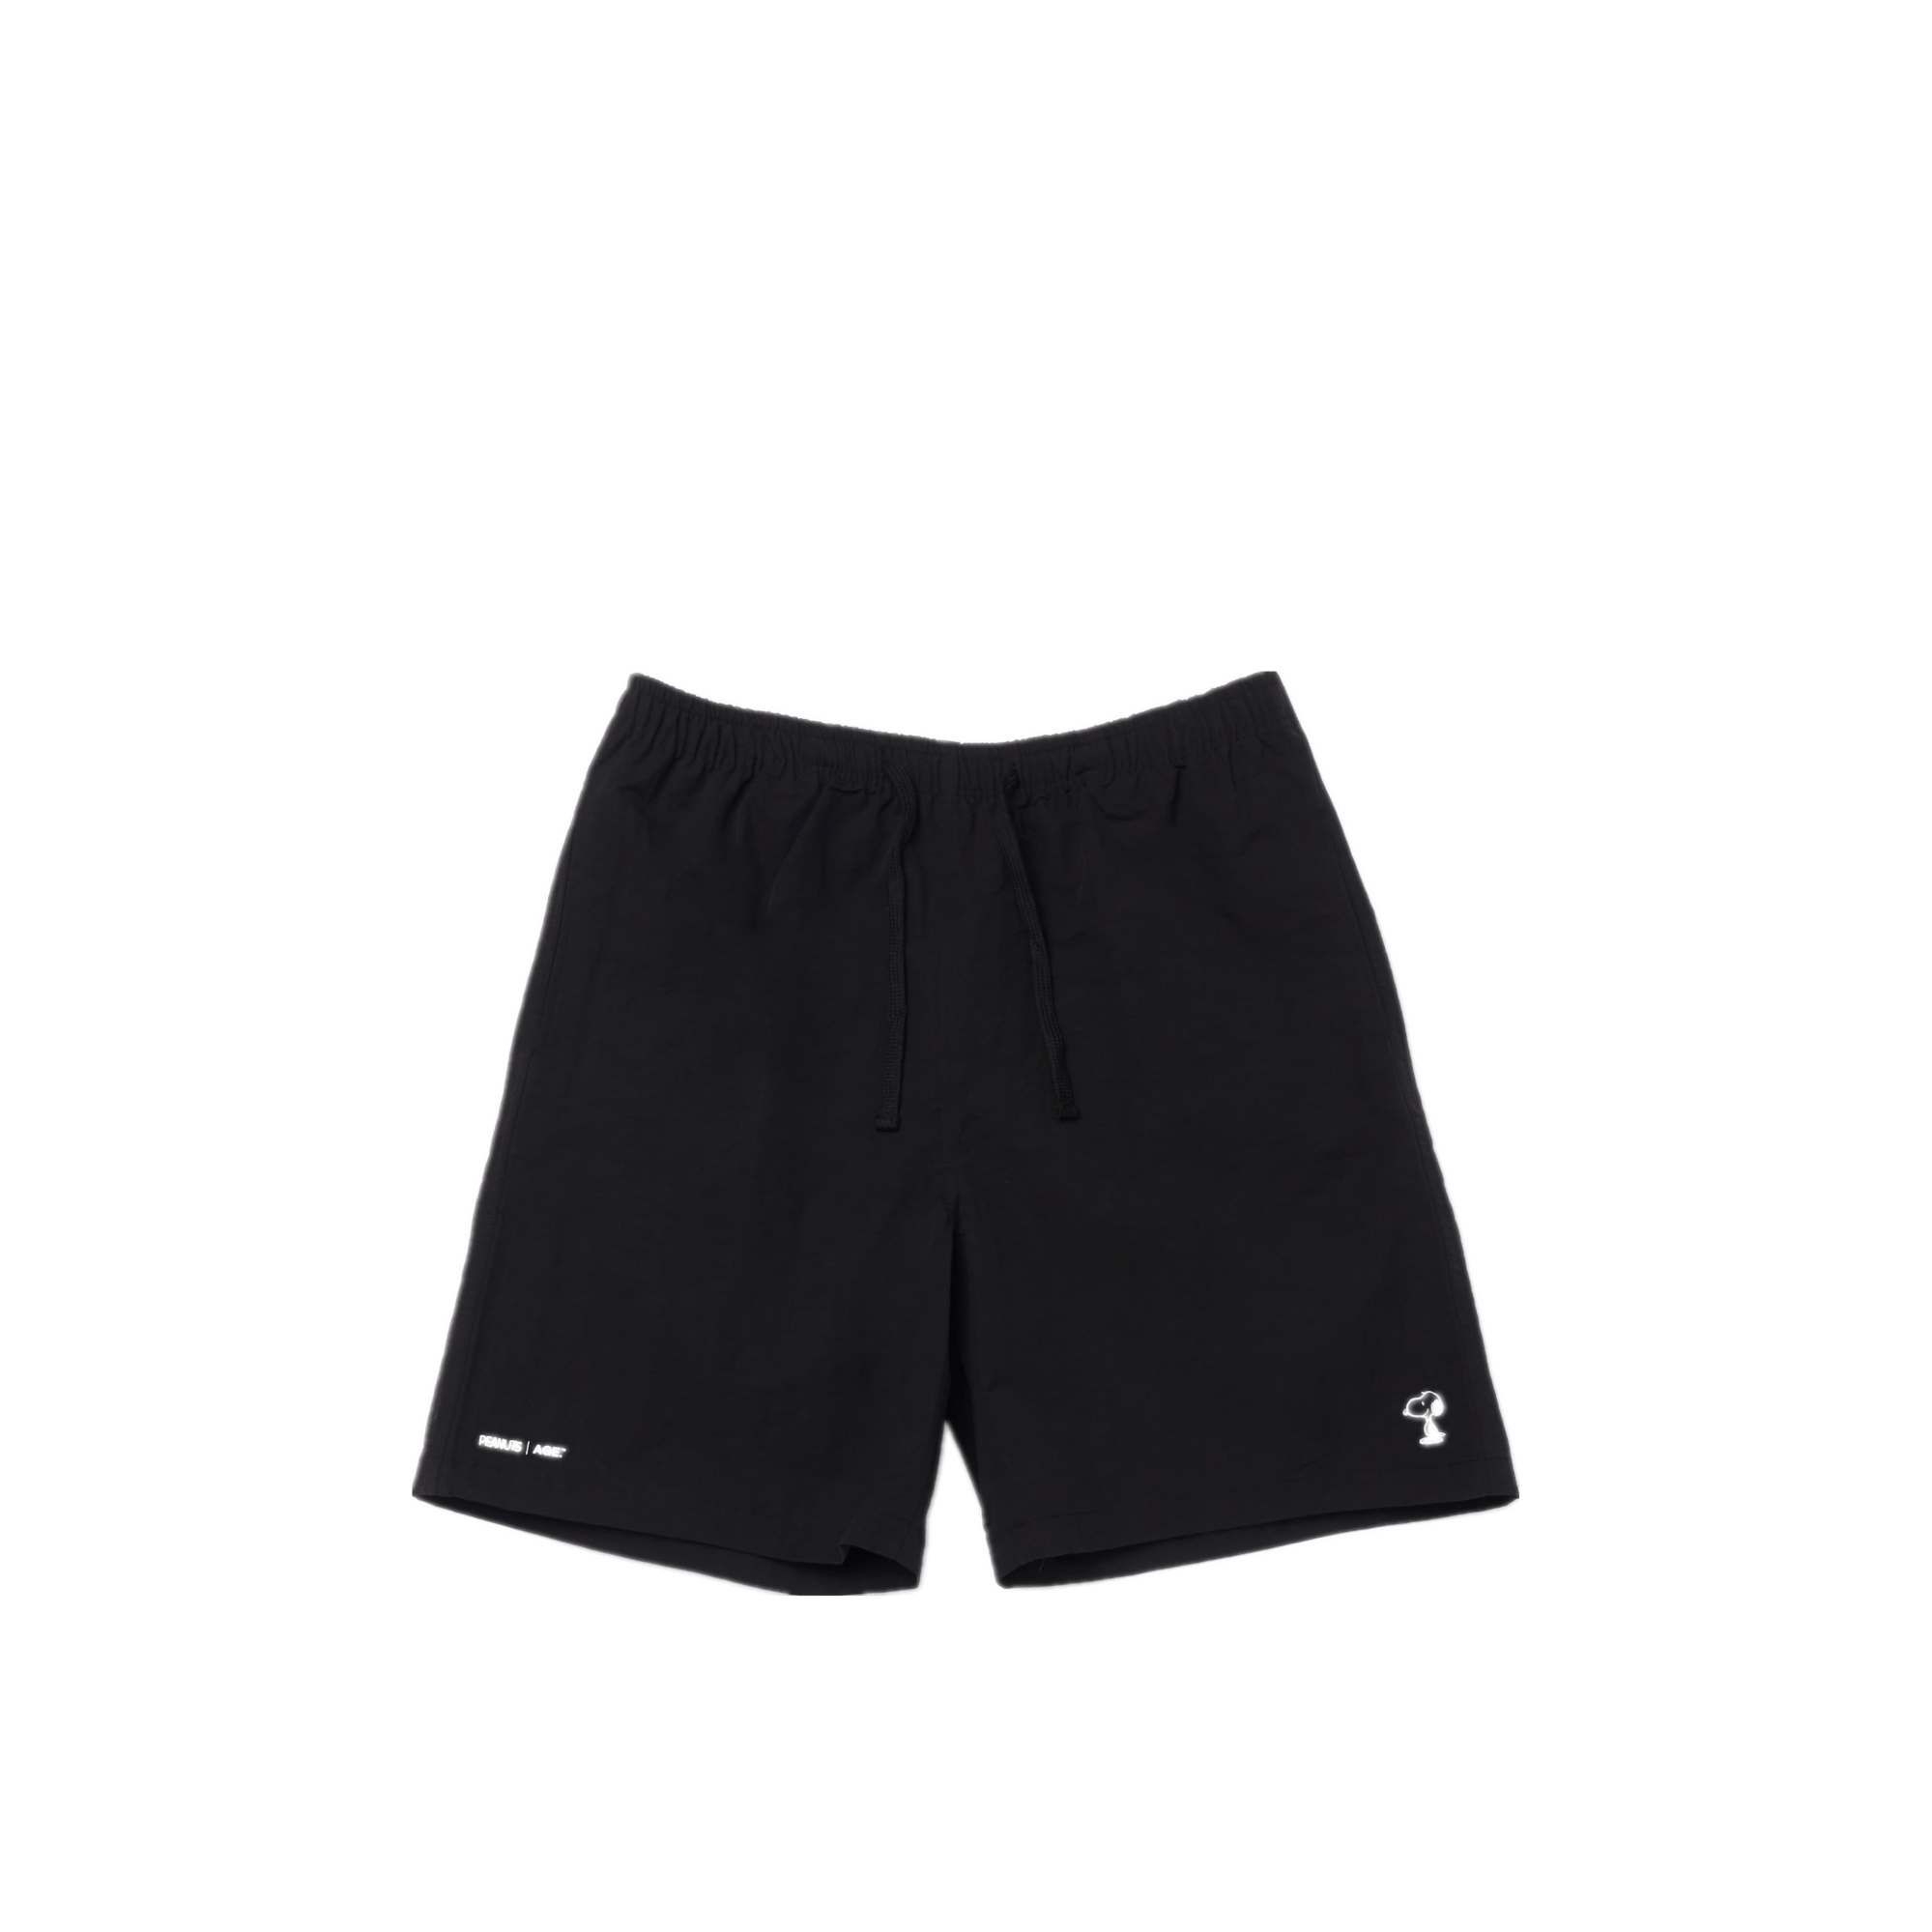 AGE X Snoopy Standing Shorts BK